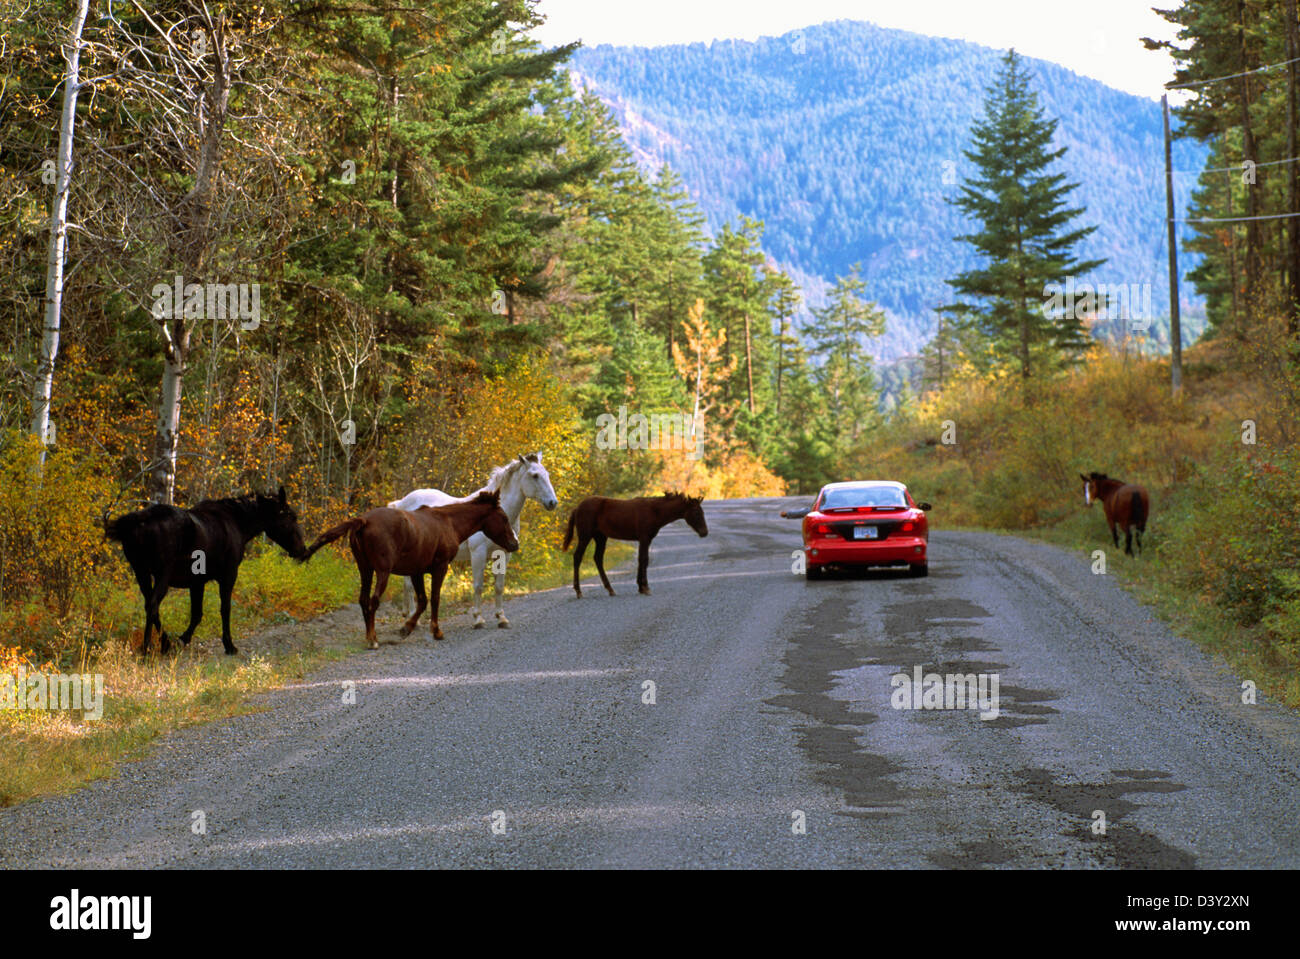 A Herd of Free Roaming Wild Horses walking and grazing along a Country Road, North America - Stock Image